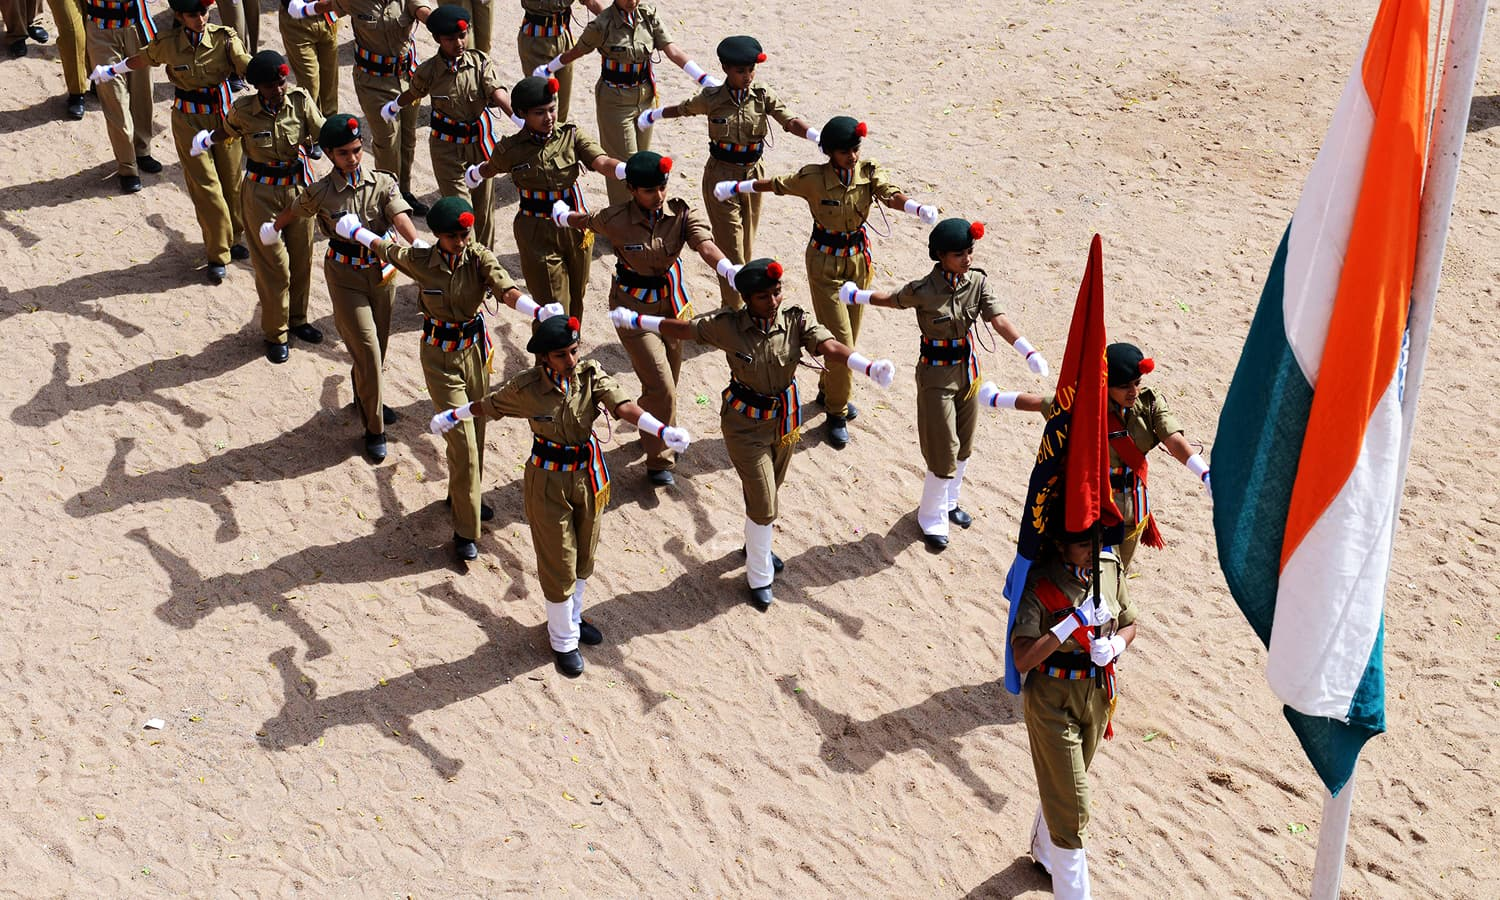 National Cadet Corps(NCC) students march during Indian Independence Day celebrations at Saint Francis Girls High School in Secunderabad, the twin city of Hyderabad on August 15, 2016. ─ AFP